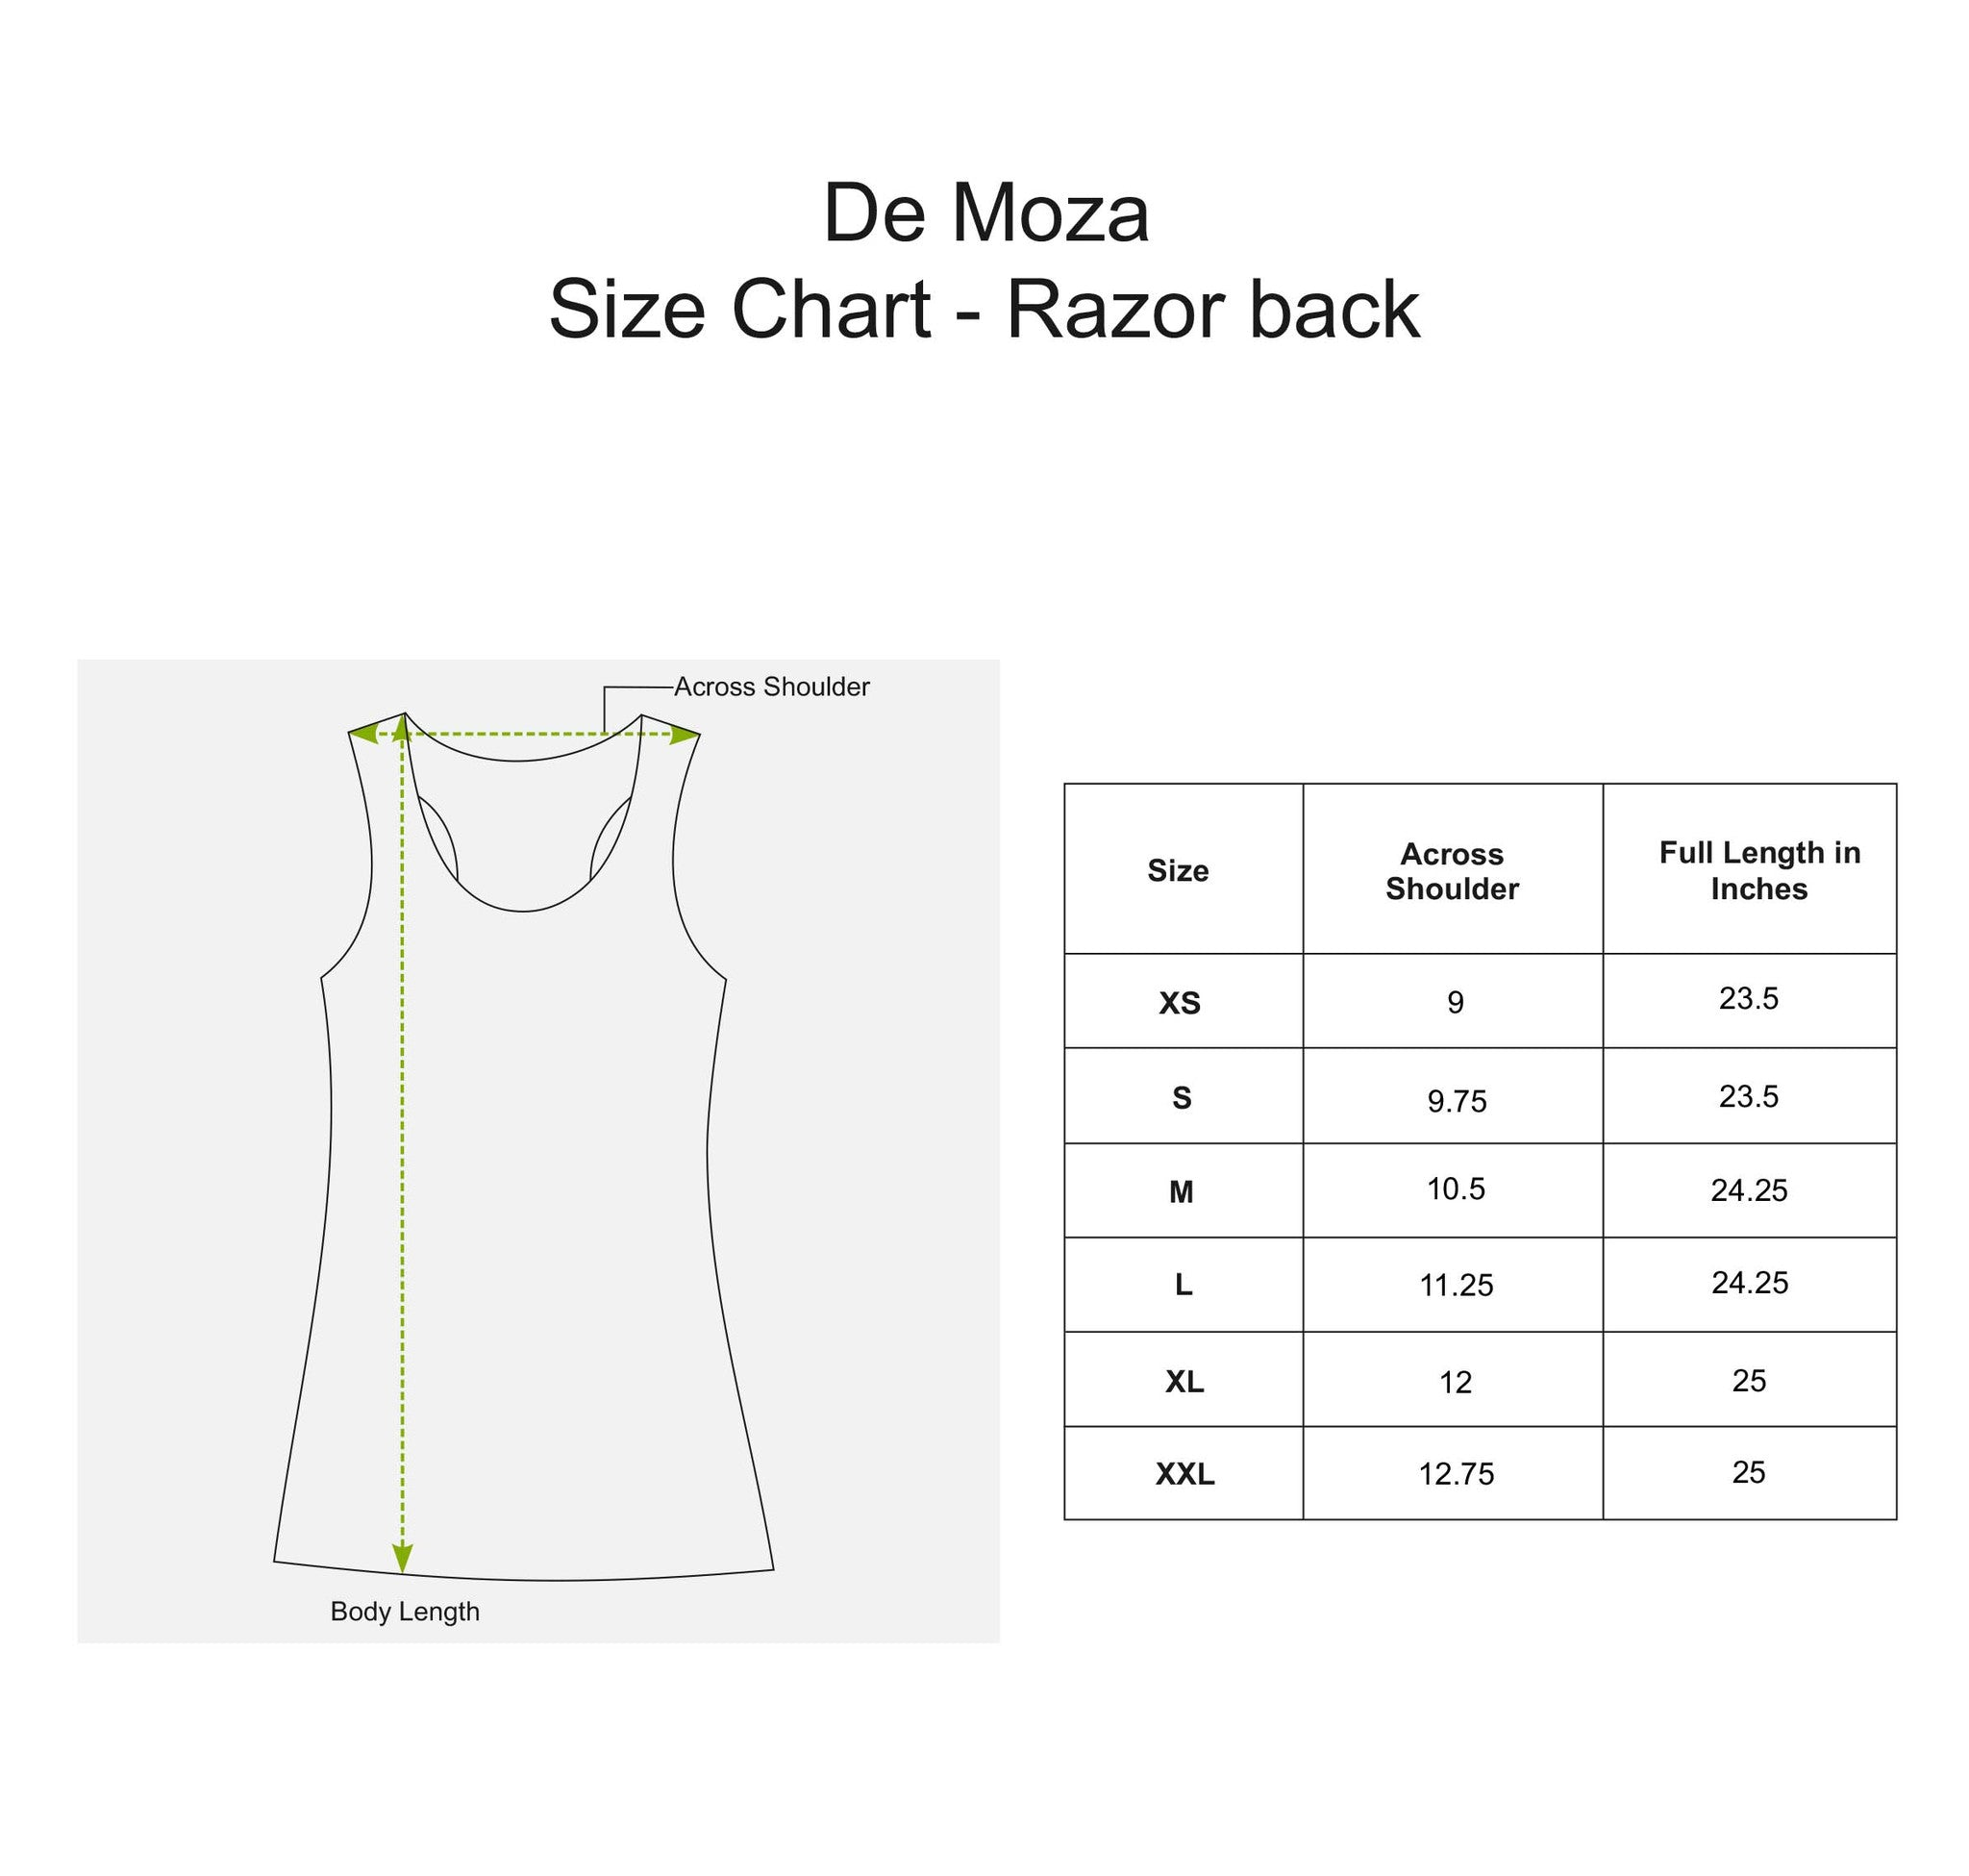 De Moza Ladies Knit Top Razor Back Knited Solid Cayenne